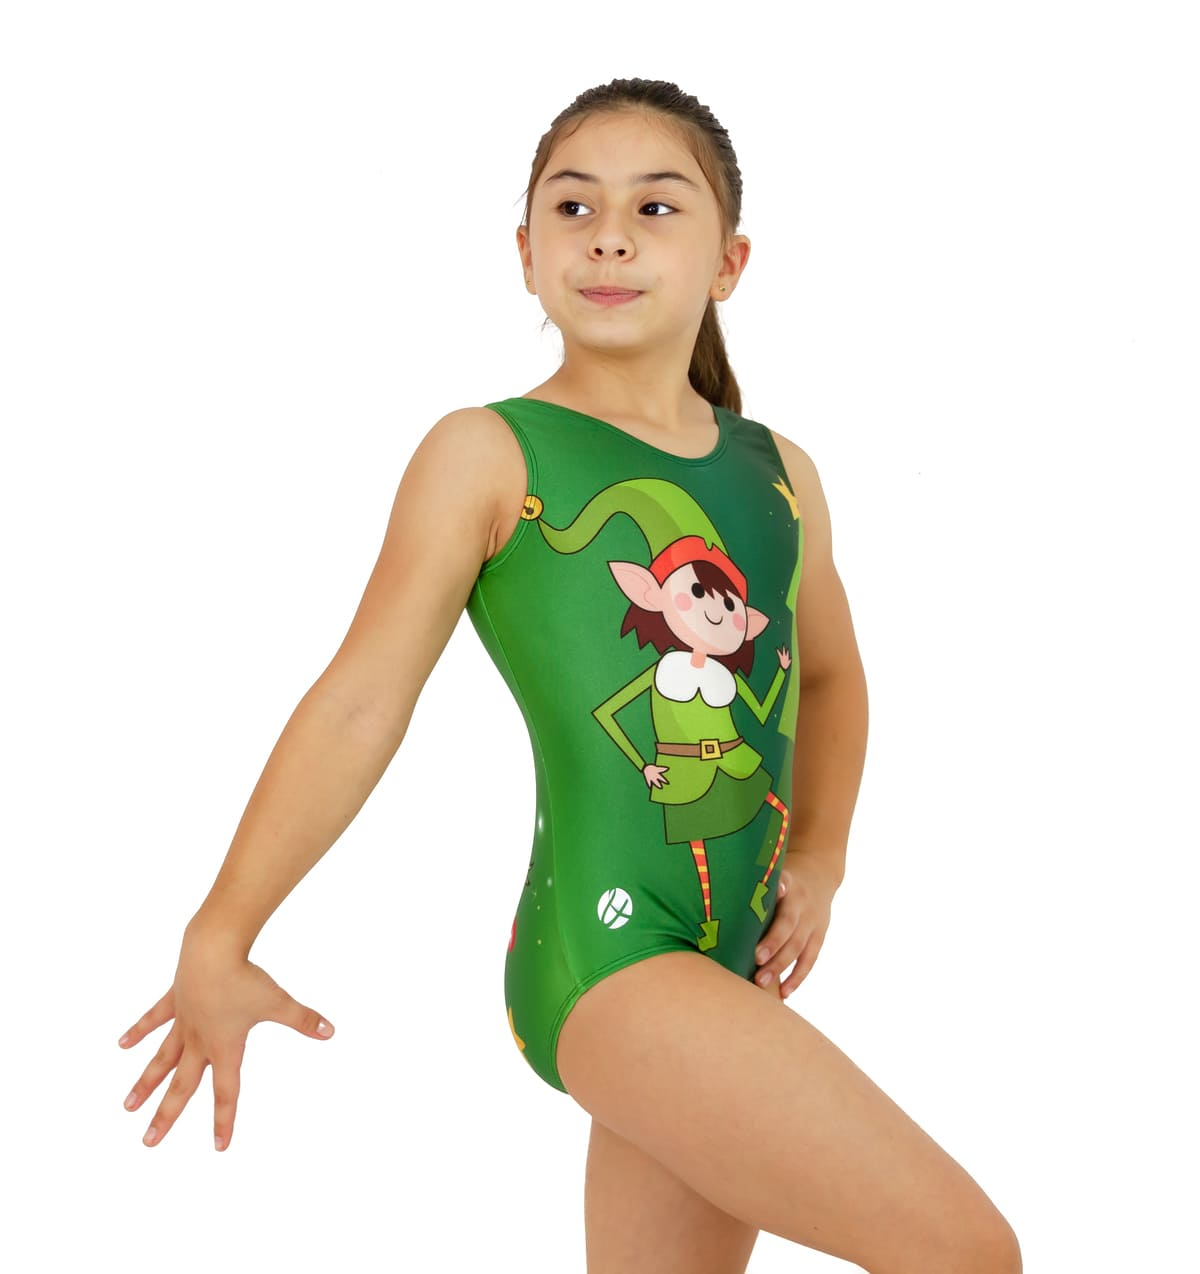 ELF & GRINCH TANK LEOTARD